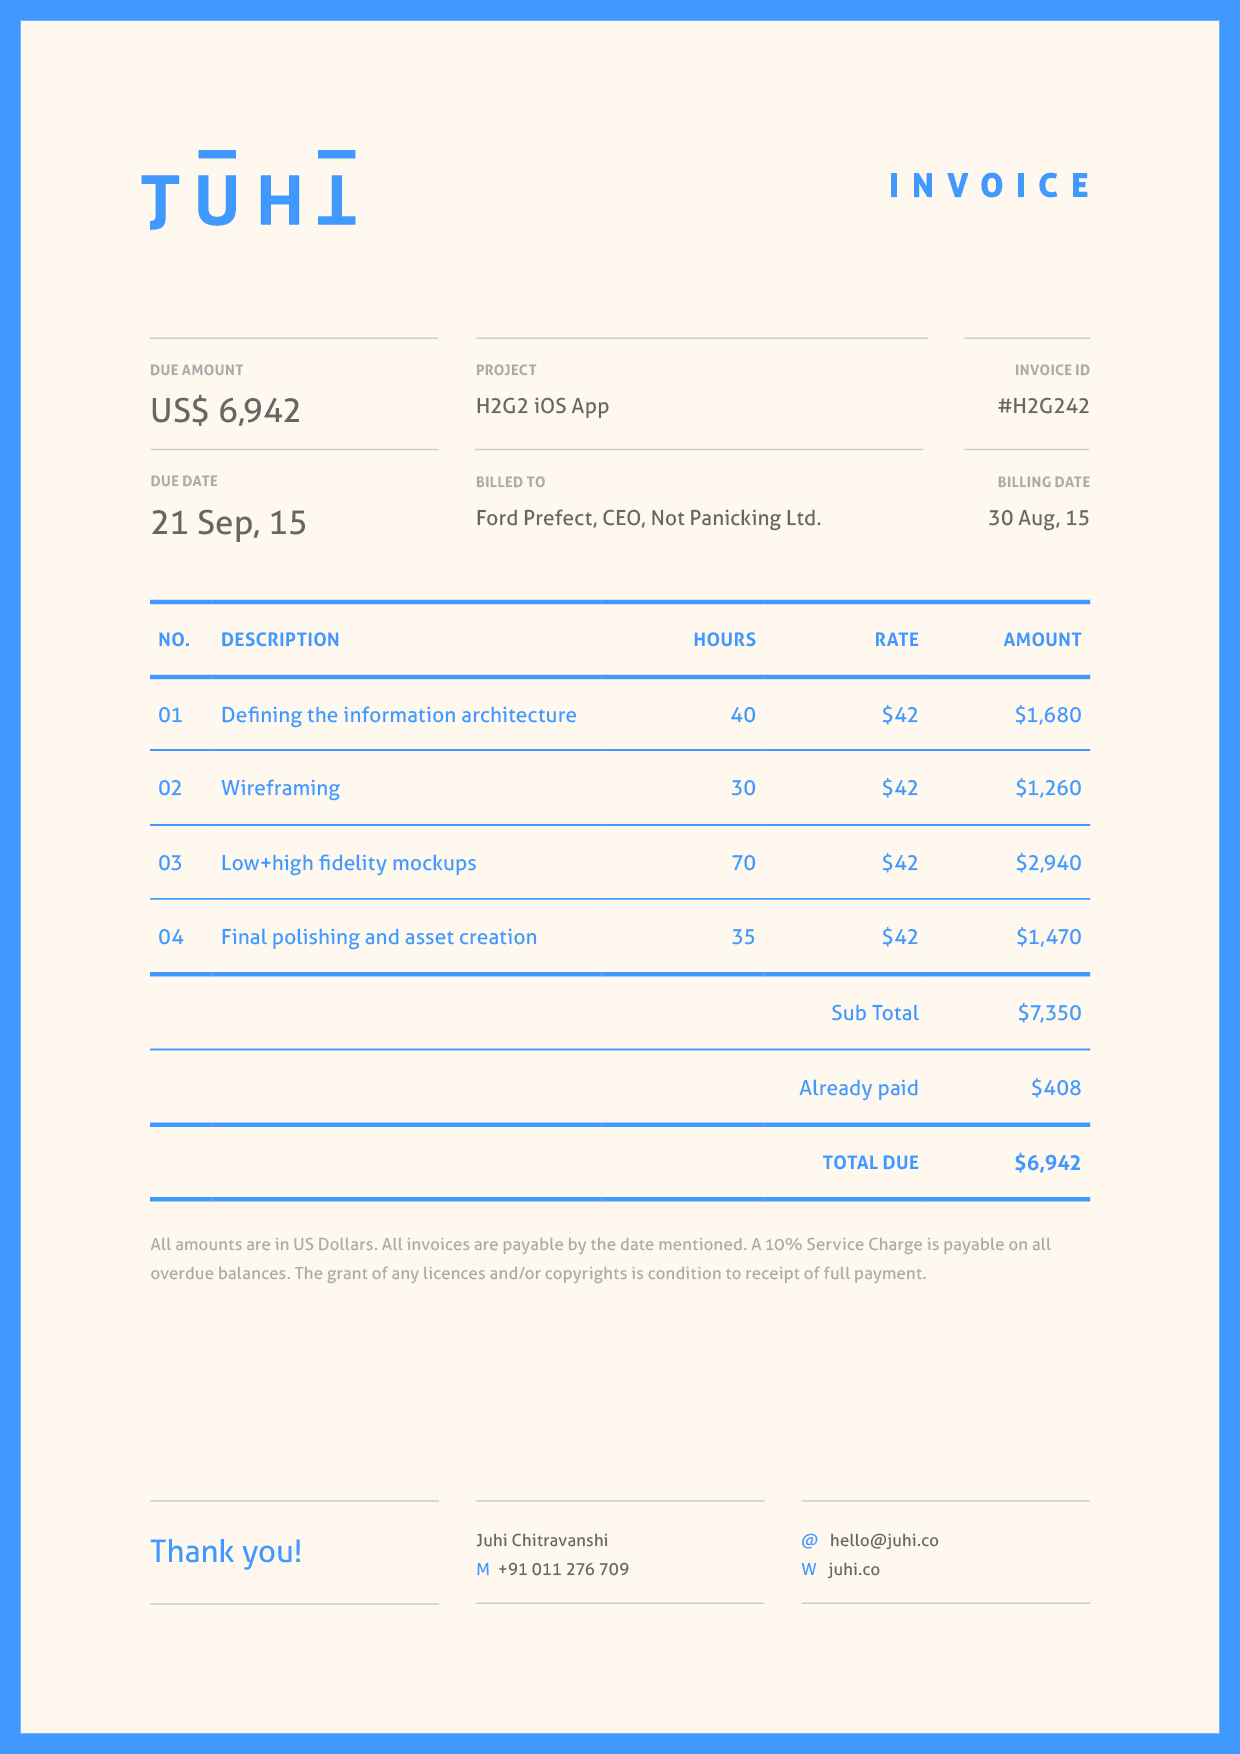 Usdgus  Sweet Dont Hold Back On Your Invoice  Inspiring Designs  With Goodlooking Invoice By Juhi Chitravanshi Follow With Lovely View Trip Electronic Ticket Receipt Also Boots Return Policy Without Receipt In Addition Receipt Rent Payment And Tuna Receipt As Well As Print Receipt Online Additionally Pumpkin Receipts From Inspirationfeedcom With Usdgus  Goodlooking Dont Hold Back On Your Invoice  Inspiring Designs  With Lovely Invoice By Juhi Chitravanshi Follow And Sweet View Trip Electronic Ticket Receipt Also Boots Return Policy Without Receipt In Addition Receipt Rent Payment From Inspirationfeedcom